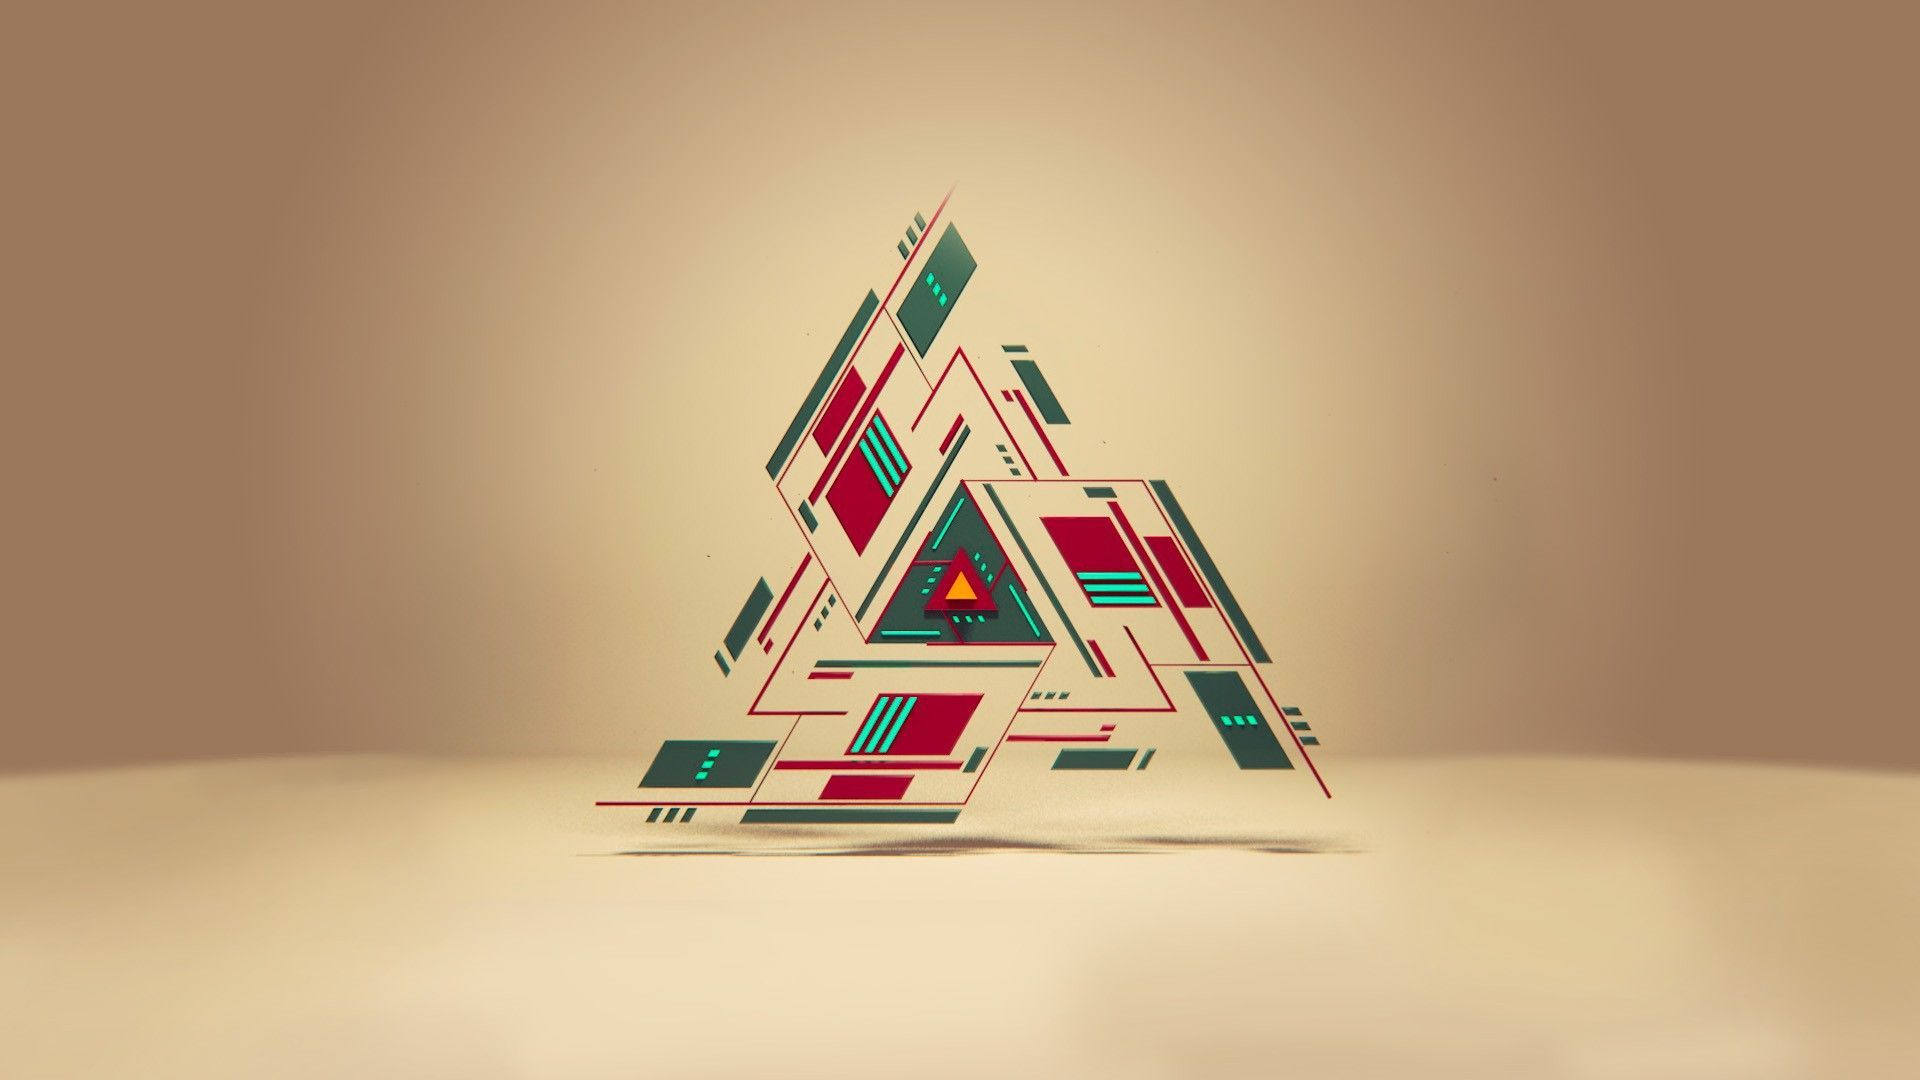 1920x1080 25+ Modern Abstract Geometric Wallpapers - Download at ...